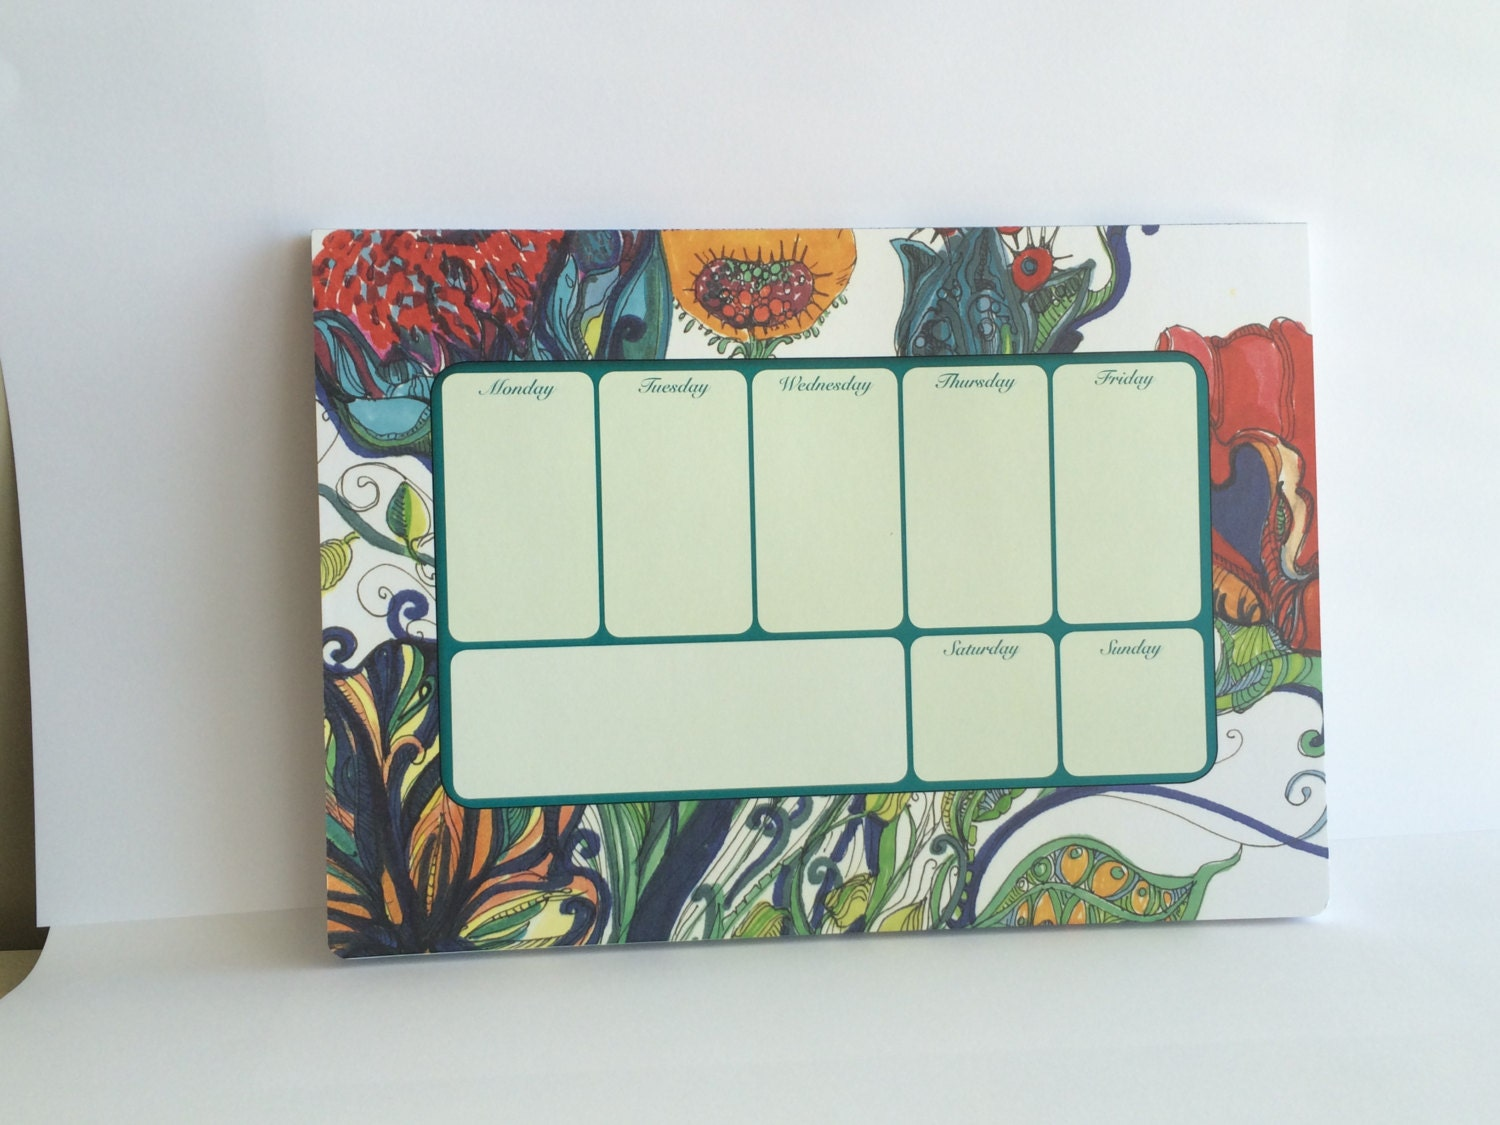 Weekly Desk Planner A Colorful Desk Accessory 52 Sheets Of